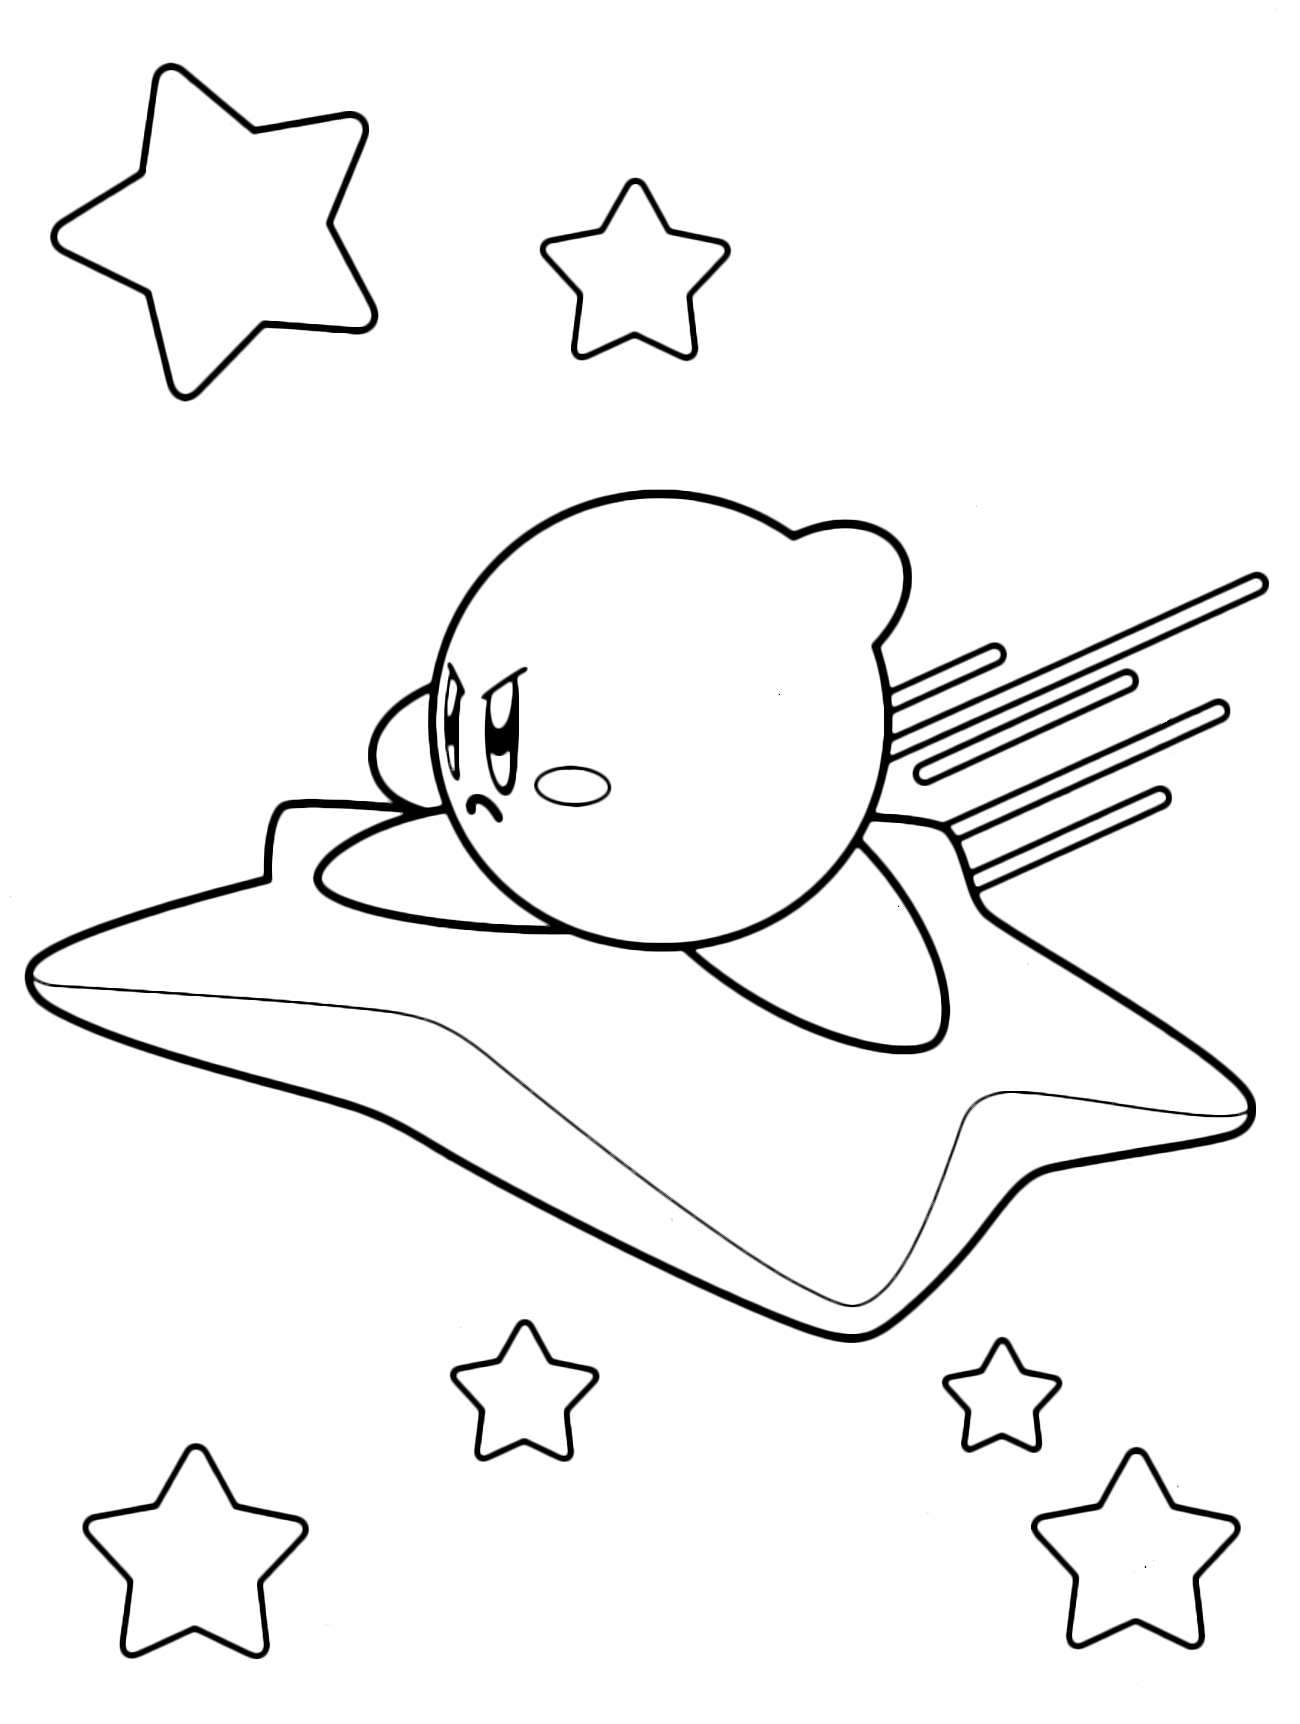 kirby star allies coloring pages kirby coloring pages concept art kood waddle dee abilities star kirby allies coloring pages